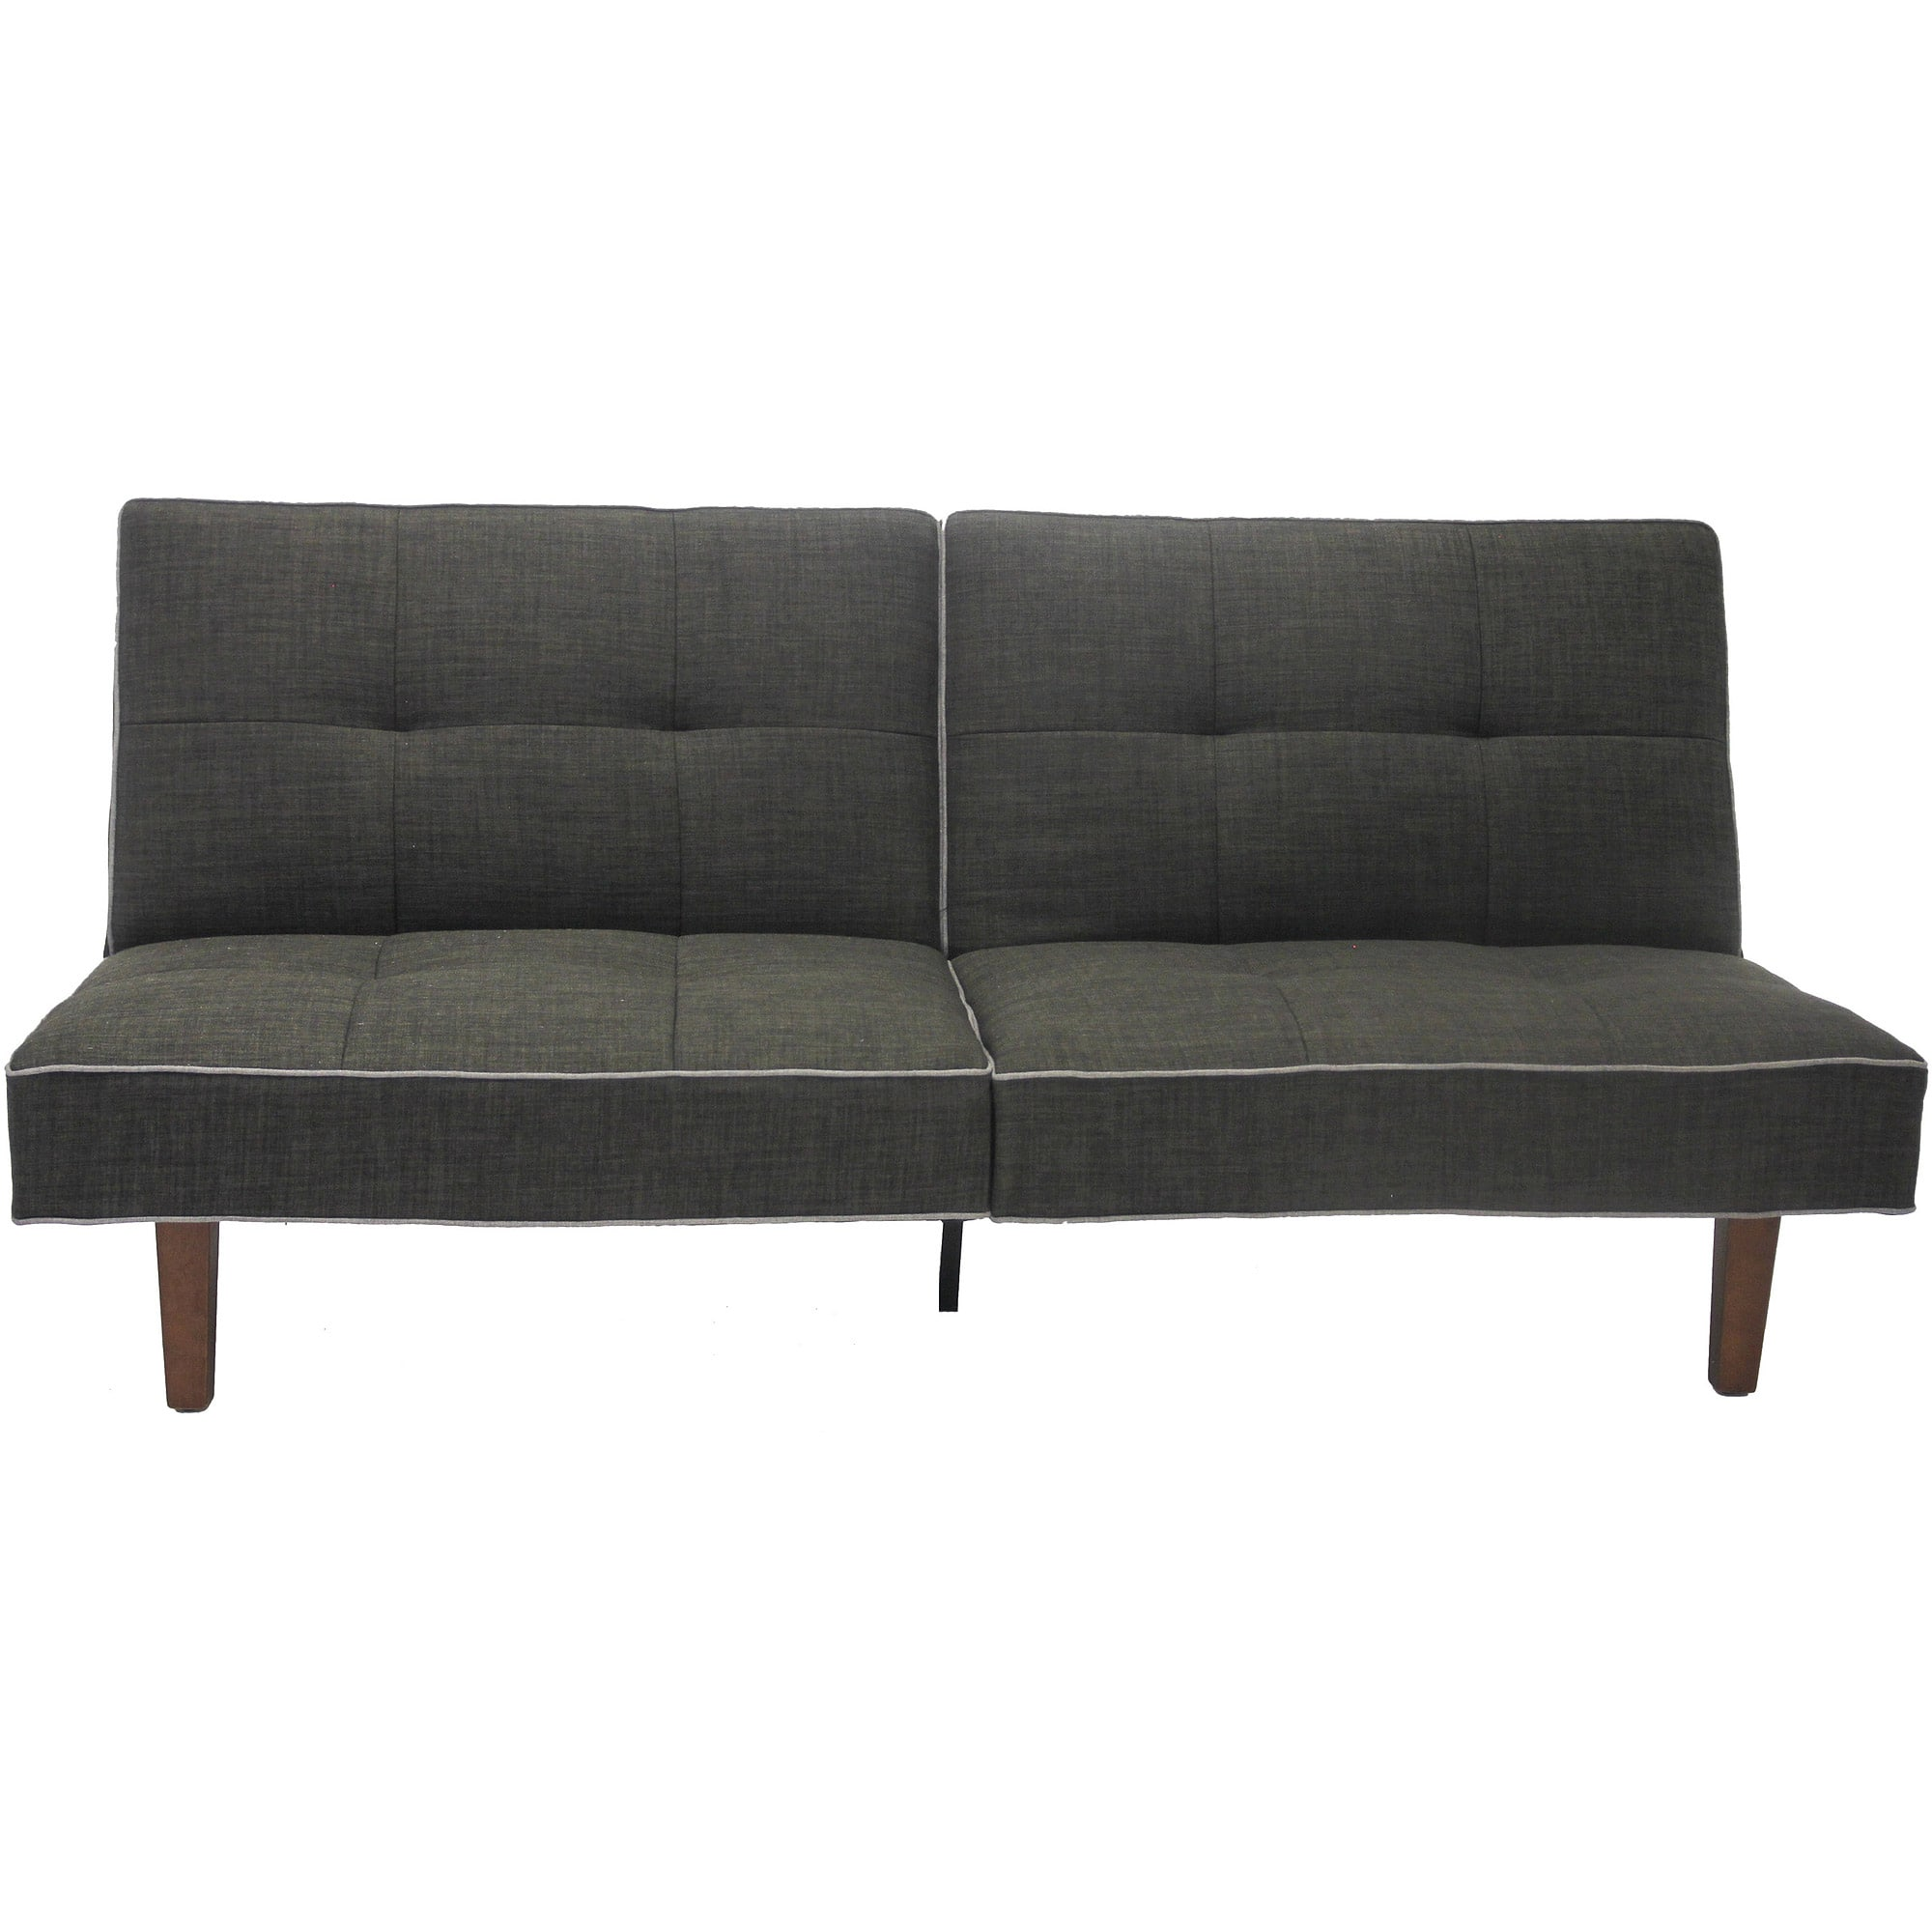 Sofa Bed Deals: Kebo Futon Sofa Bed = $99 @walmart With FS